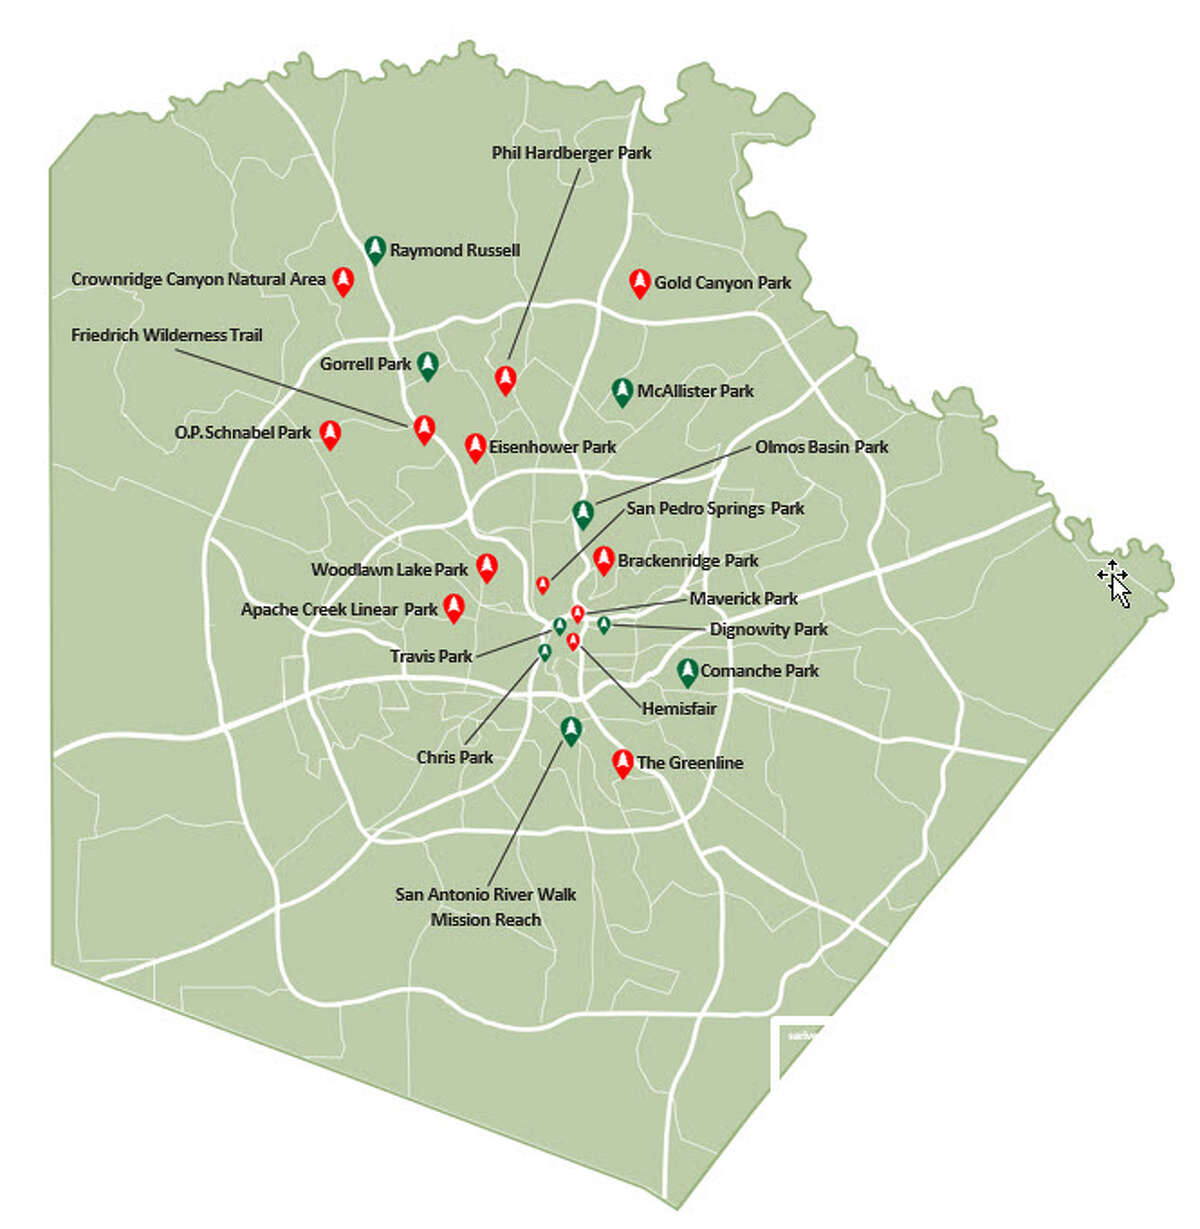 S.A.'S TOP PARKS AND GREEN SPACES